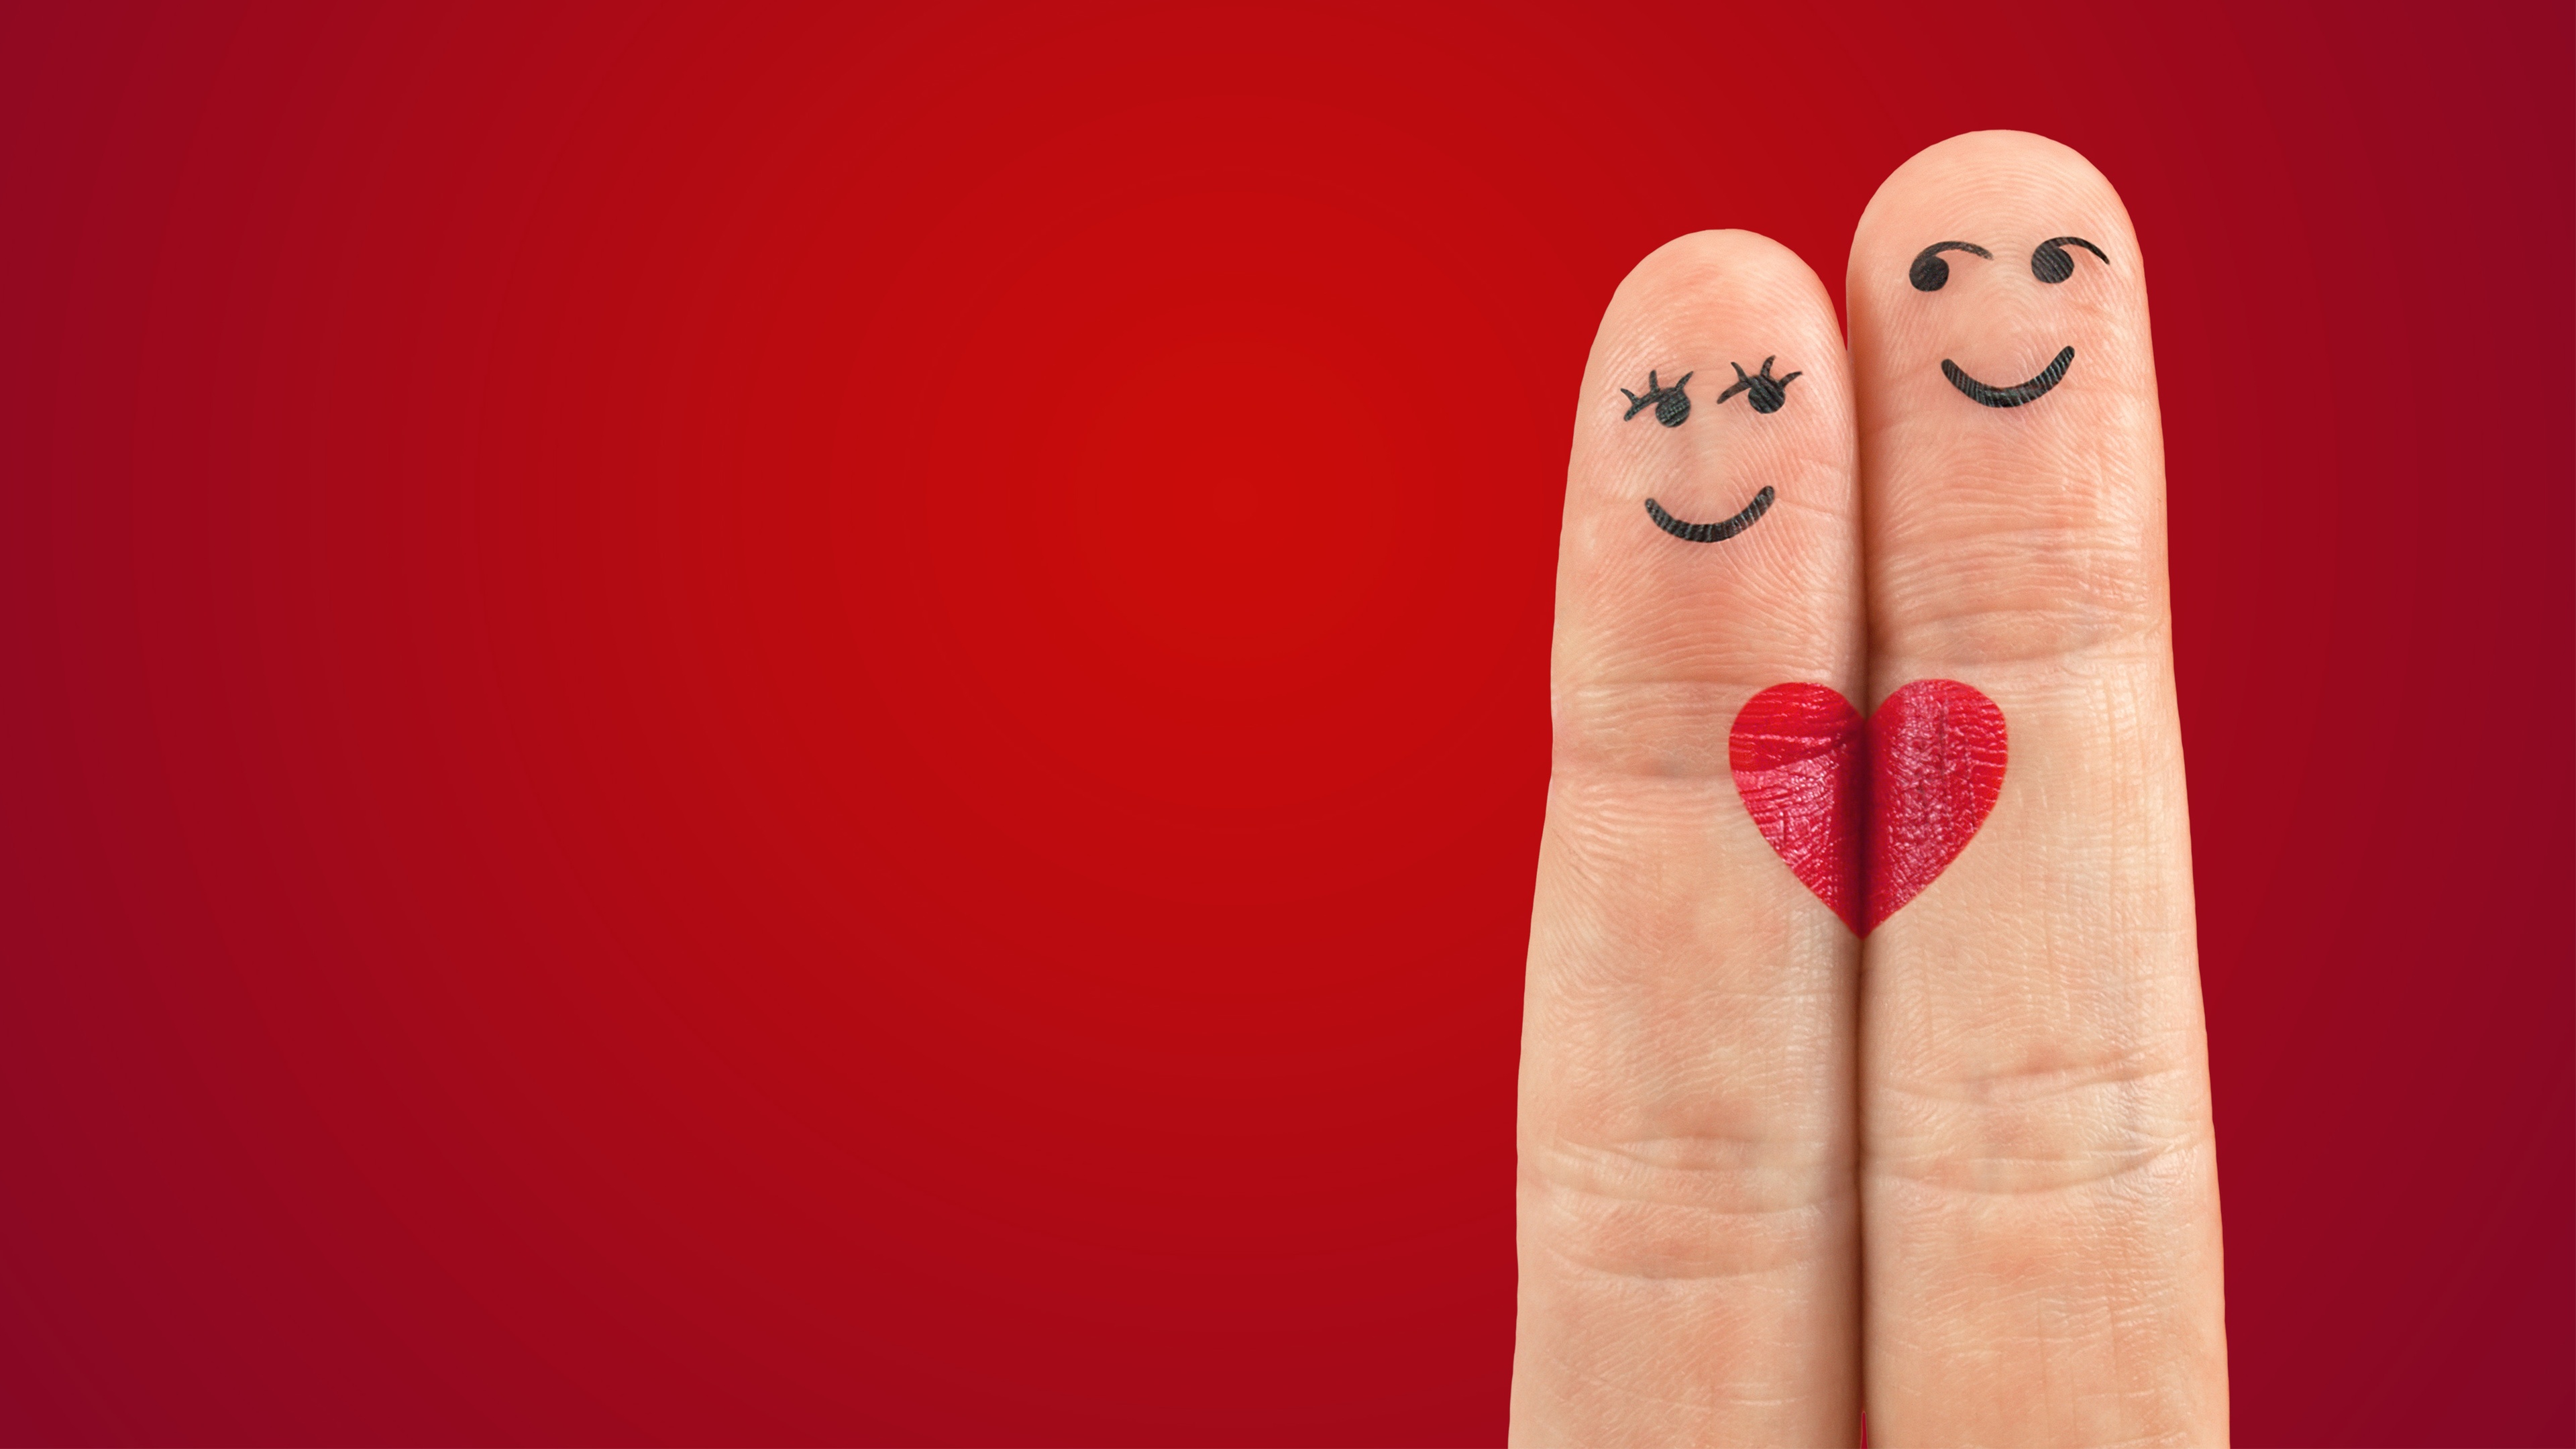 love_pair_heart_fingers-3840x2160